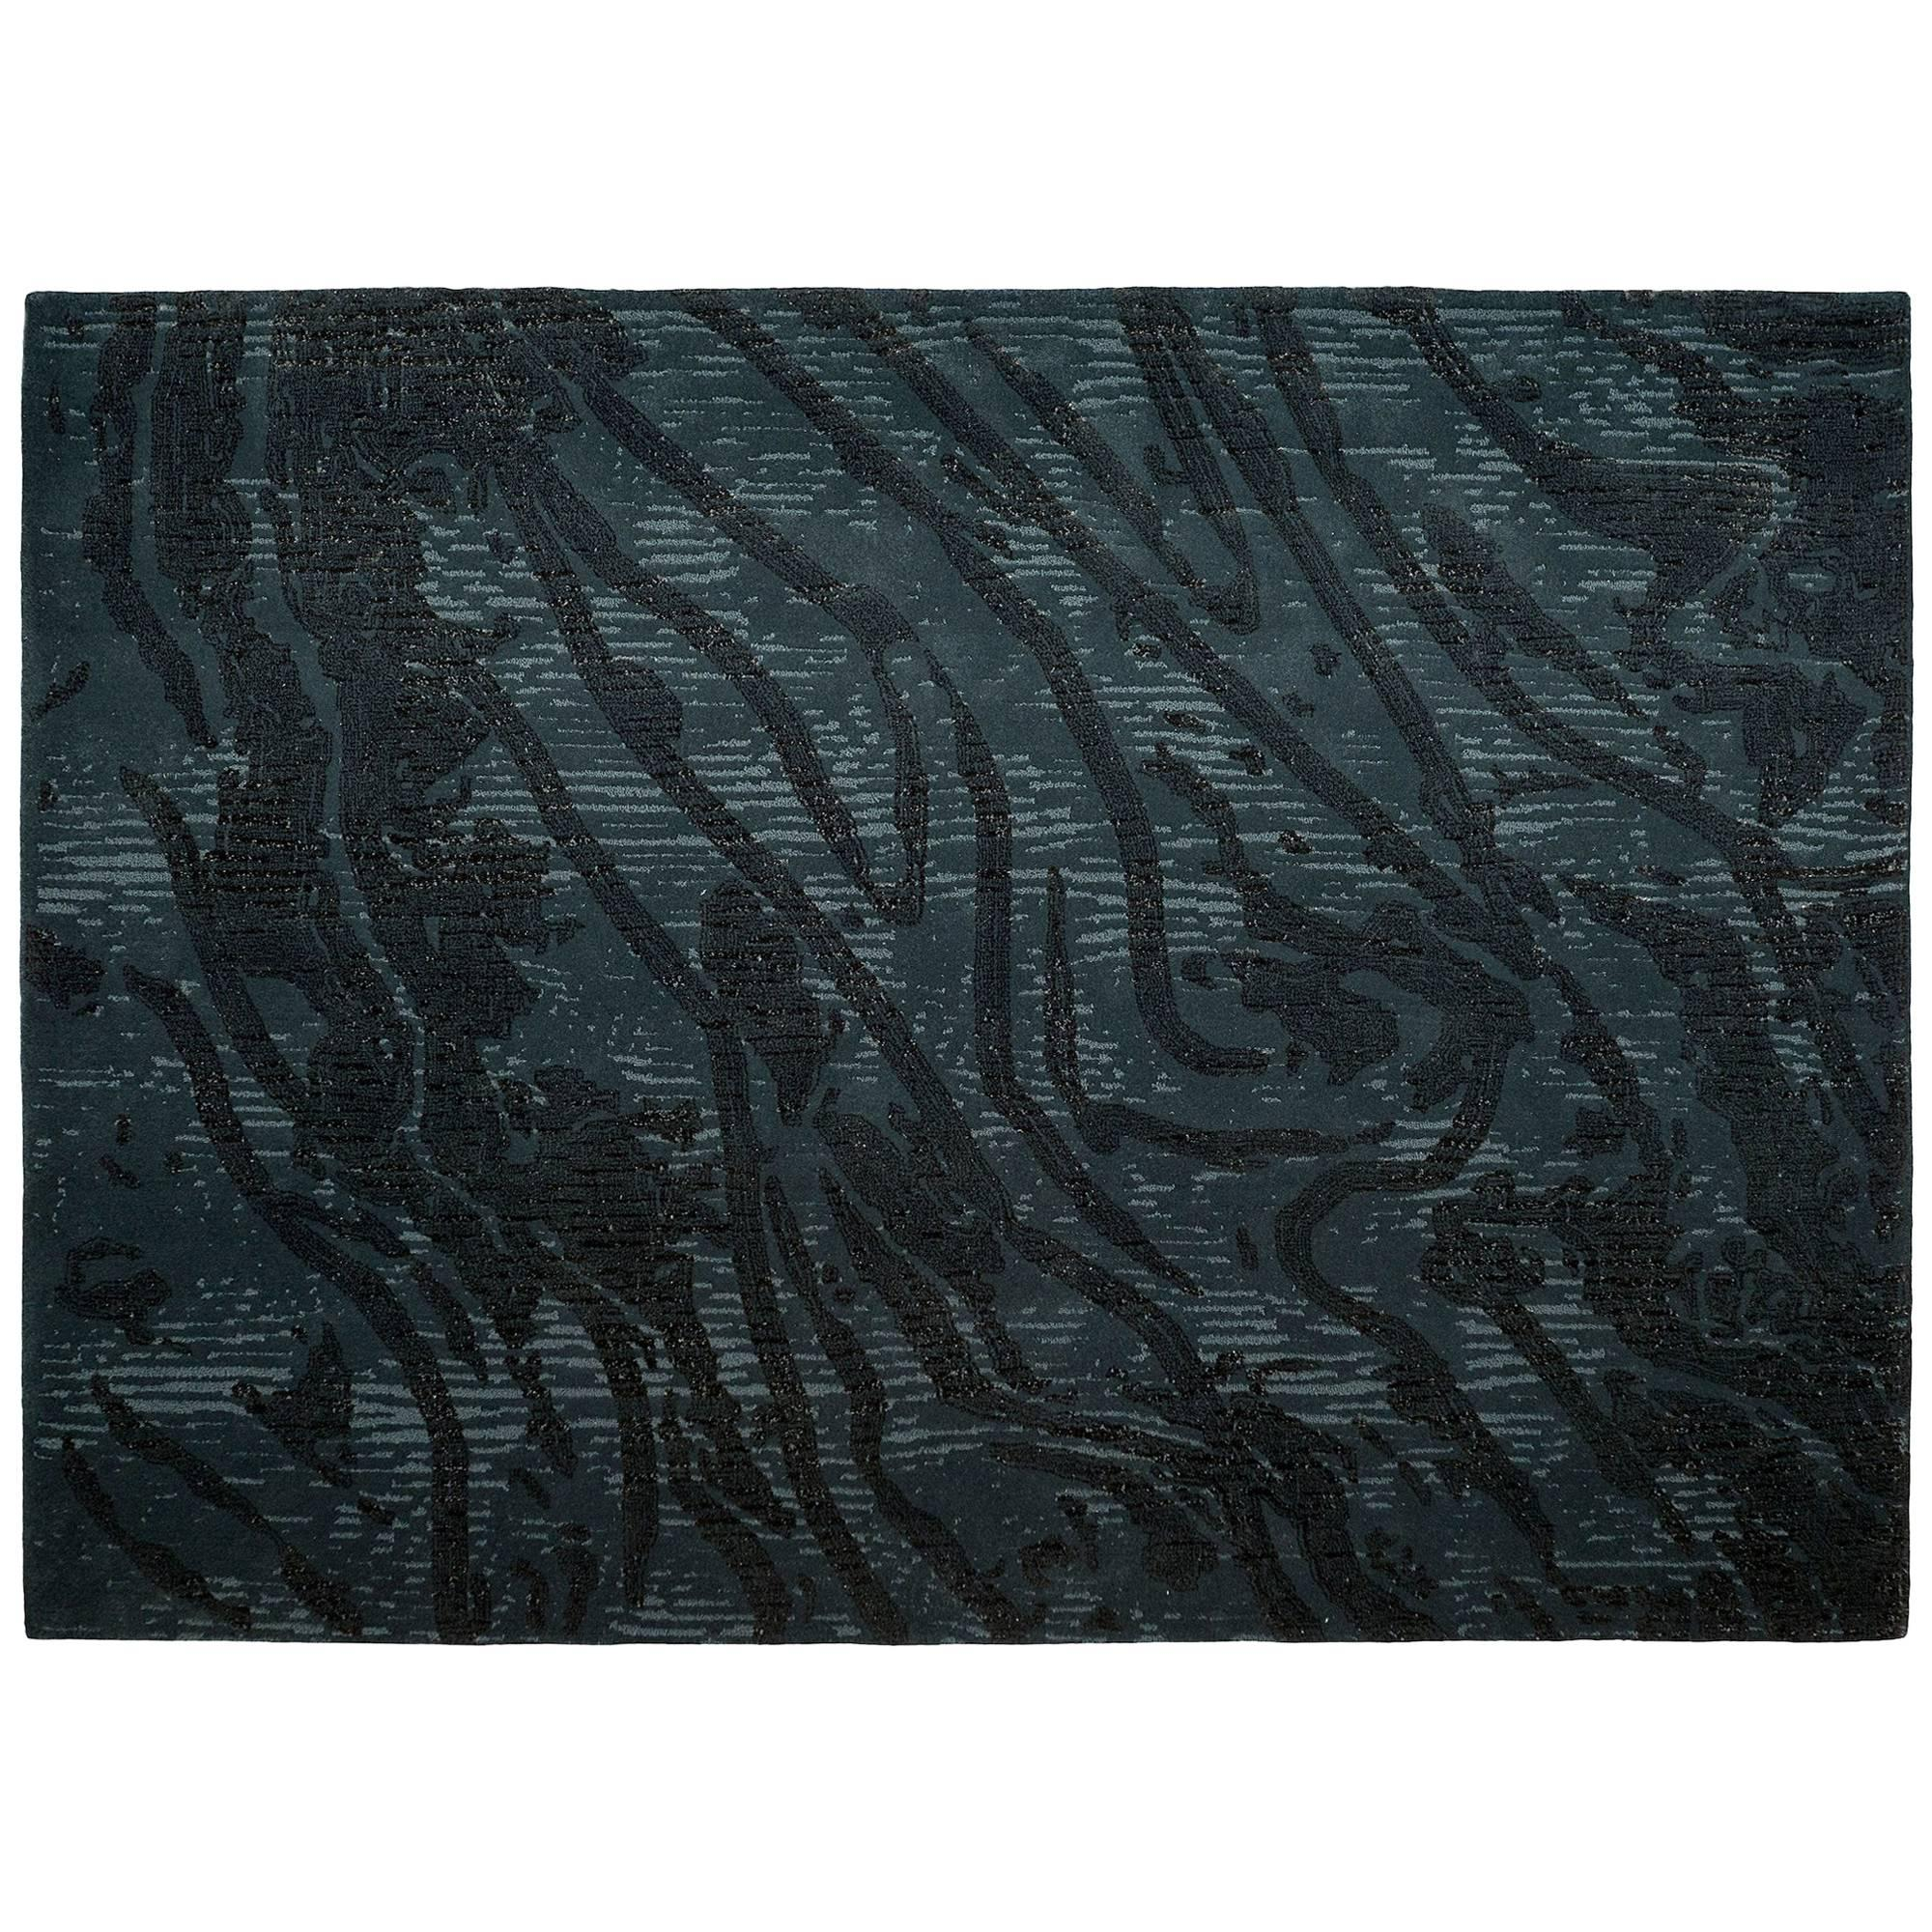 'Tastamie' Hand-Tufted Area Rug by Marguerite Lemaire & Pinton